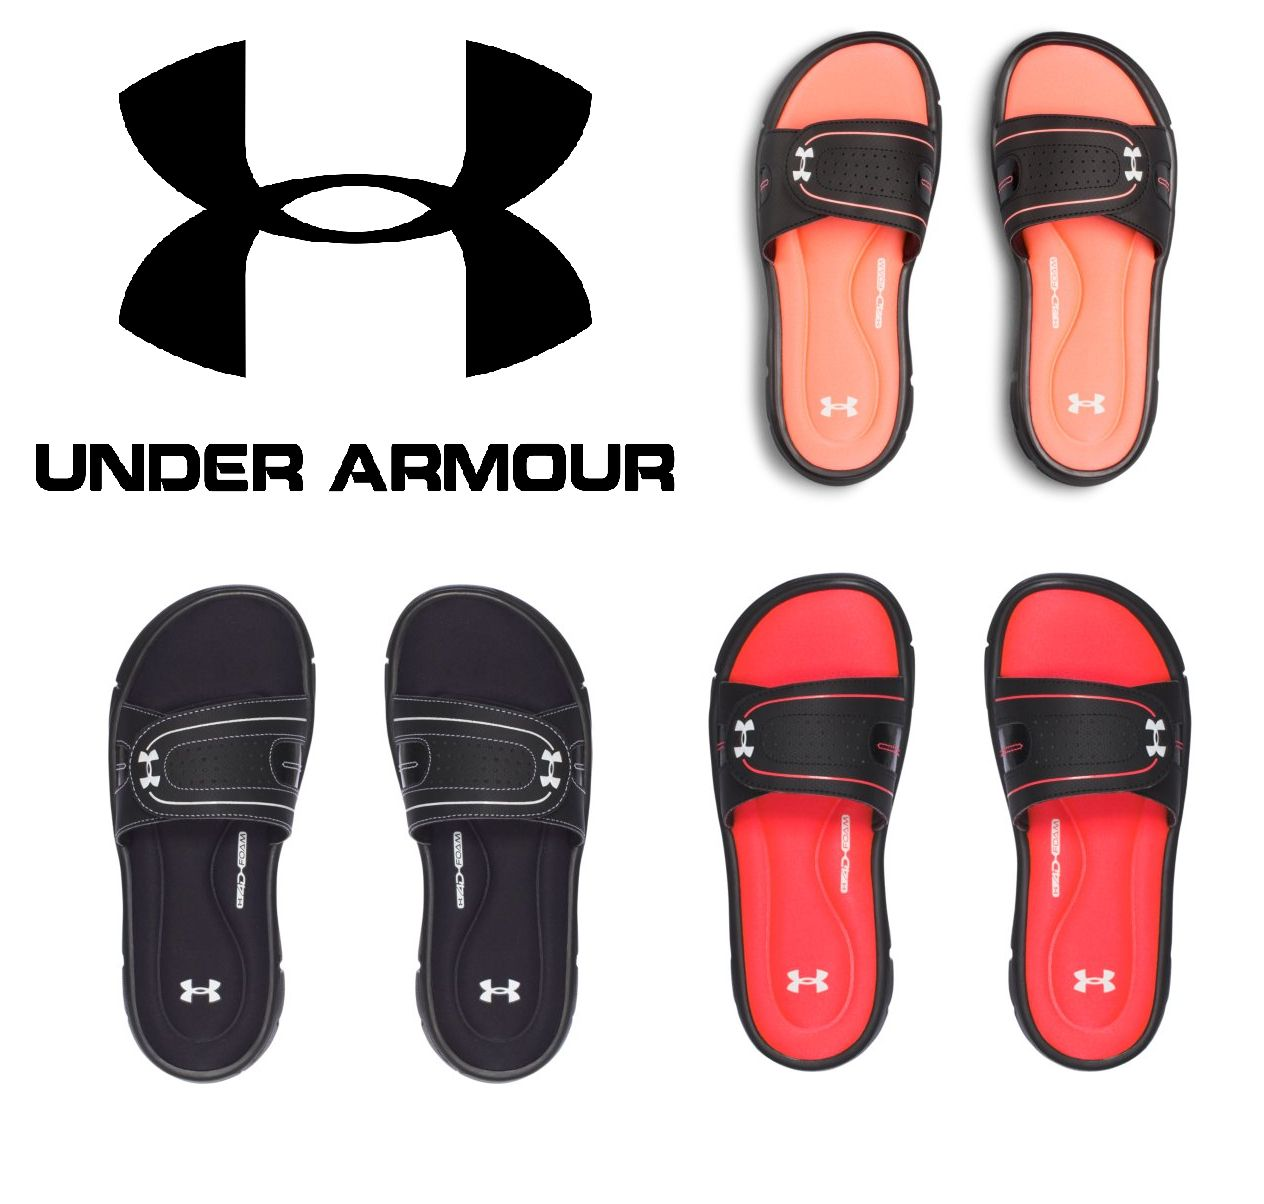 0246df520e21 Sandals 62107  Under Armour Women S Ignite Viii Sandals Slides - New - Free  Ship - 1287319 -  BUY IT NOW ONLY   23.99 on  eBay  sandals  under  armour  ...